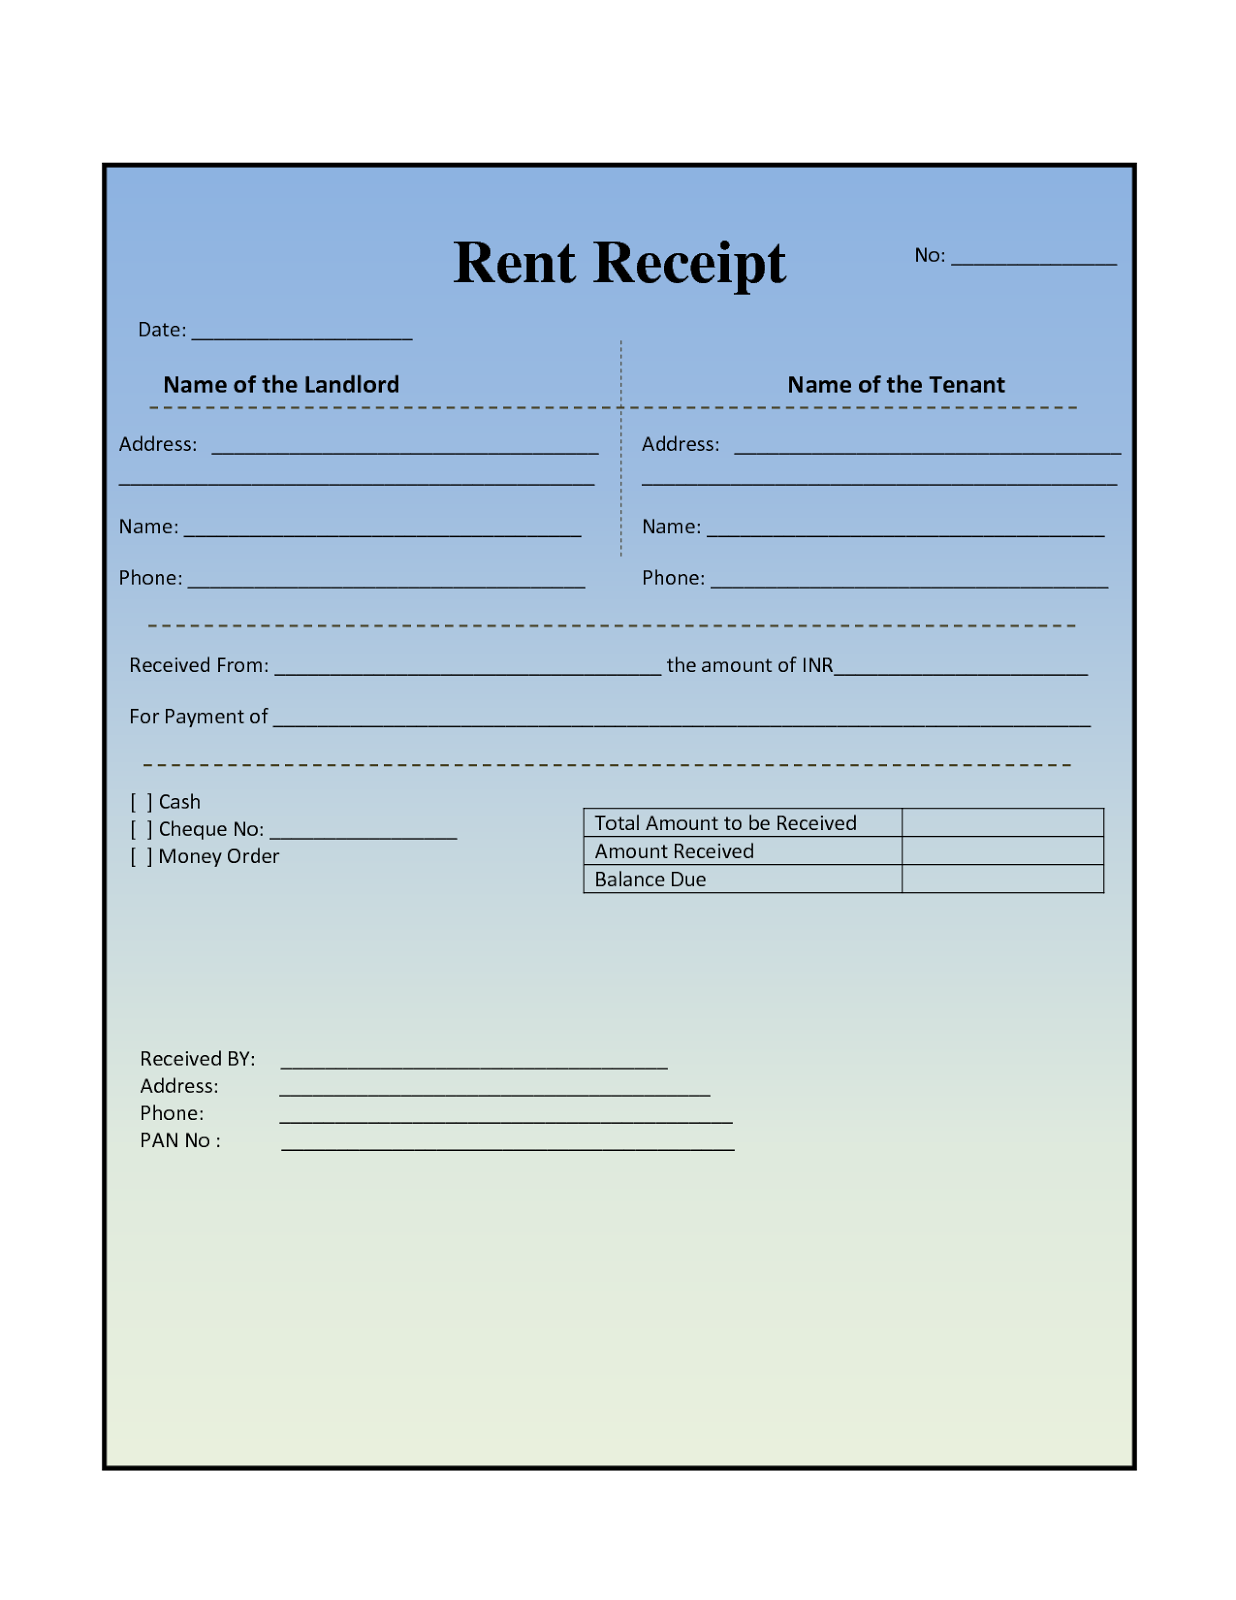 rent receipt sample doc – Rent Receipt Pdf